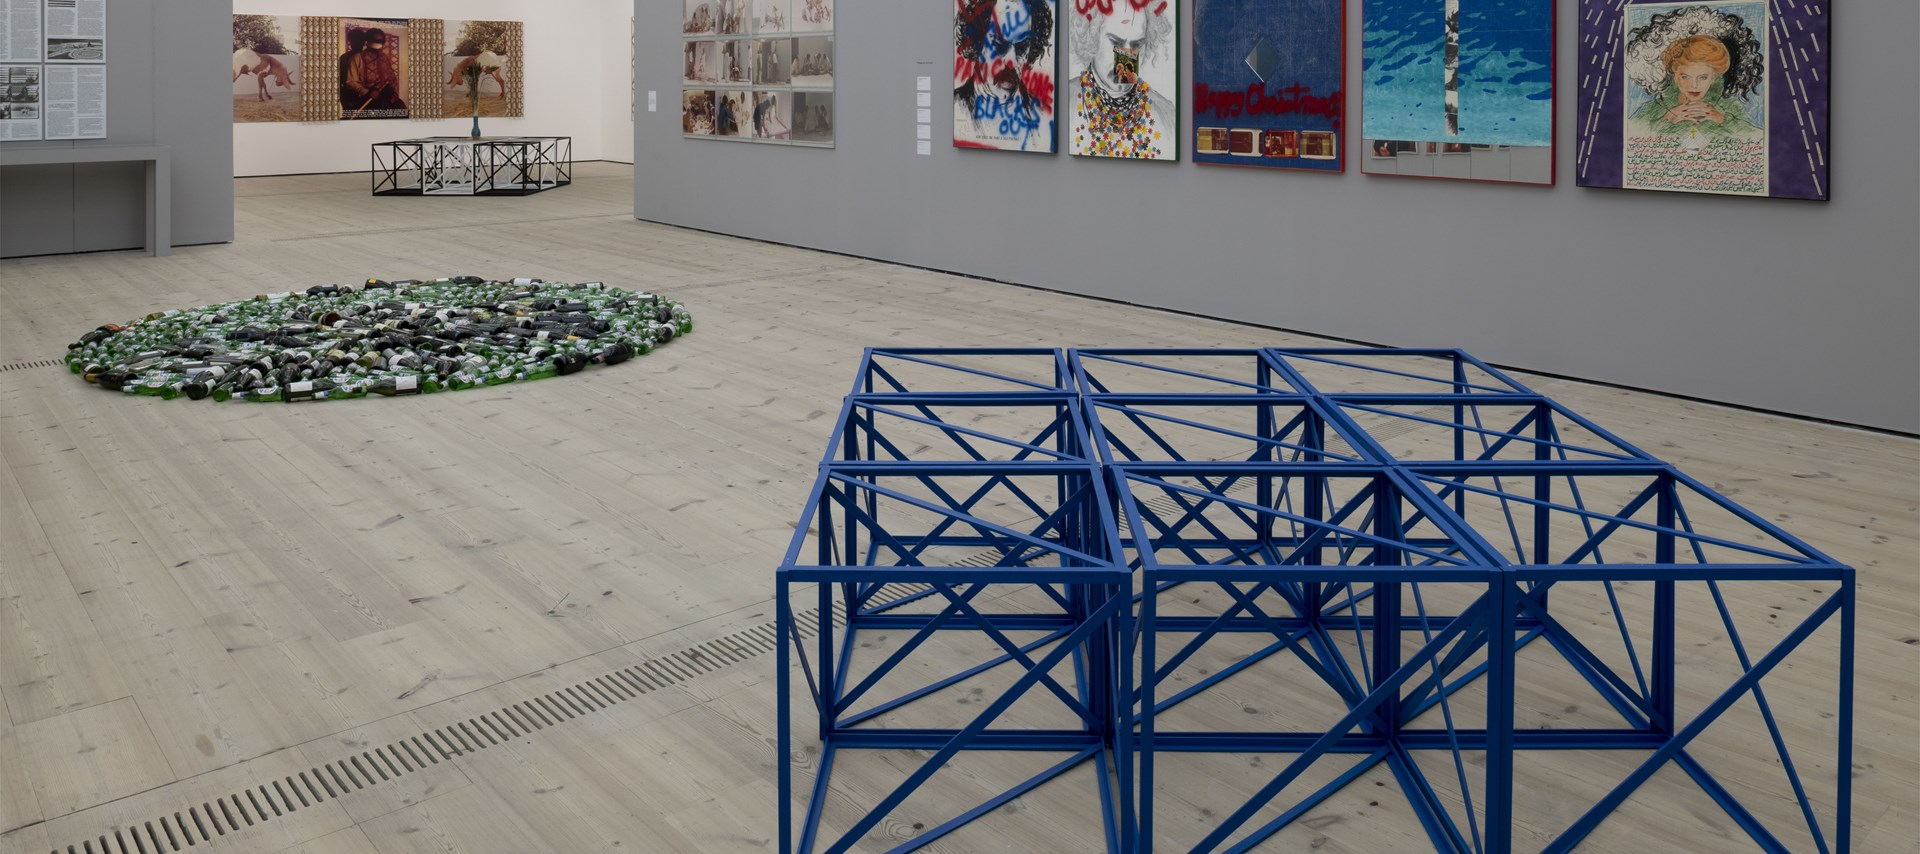 Rasheed Araeen: Installation view (02): Image: Jonty Wilde © 2018 BALTIC